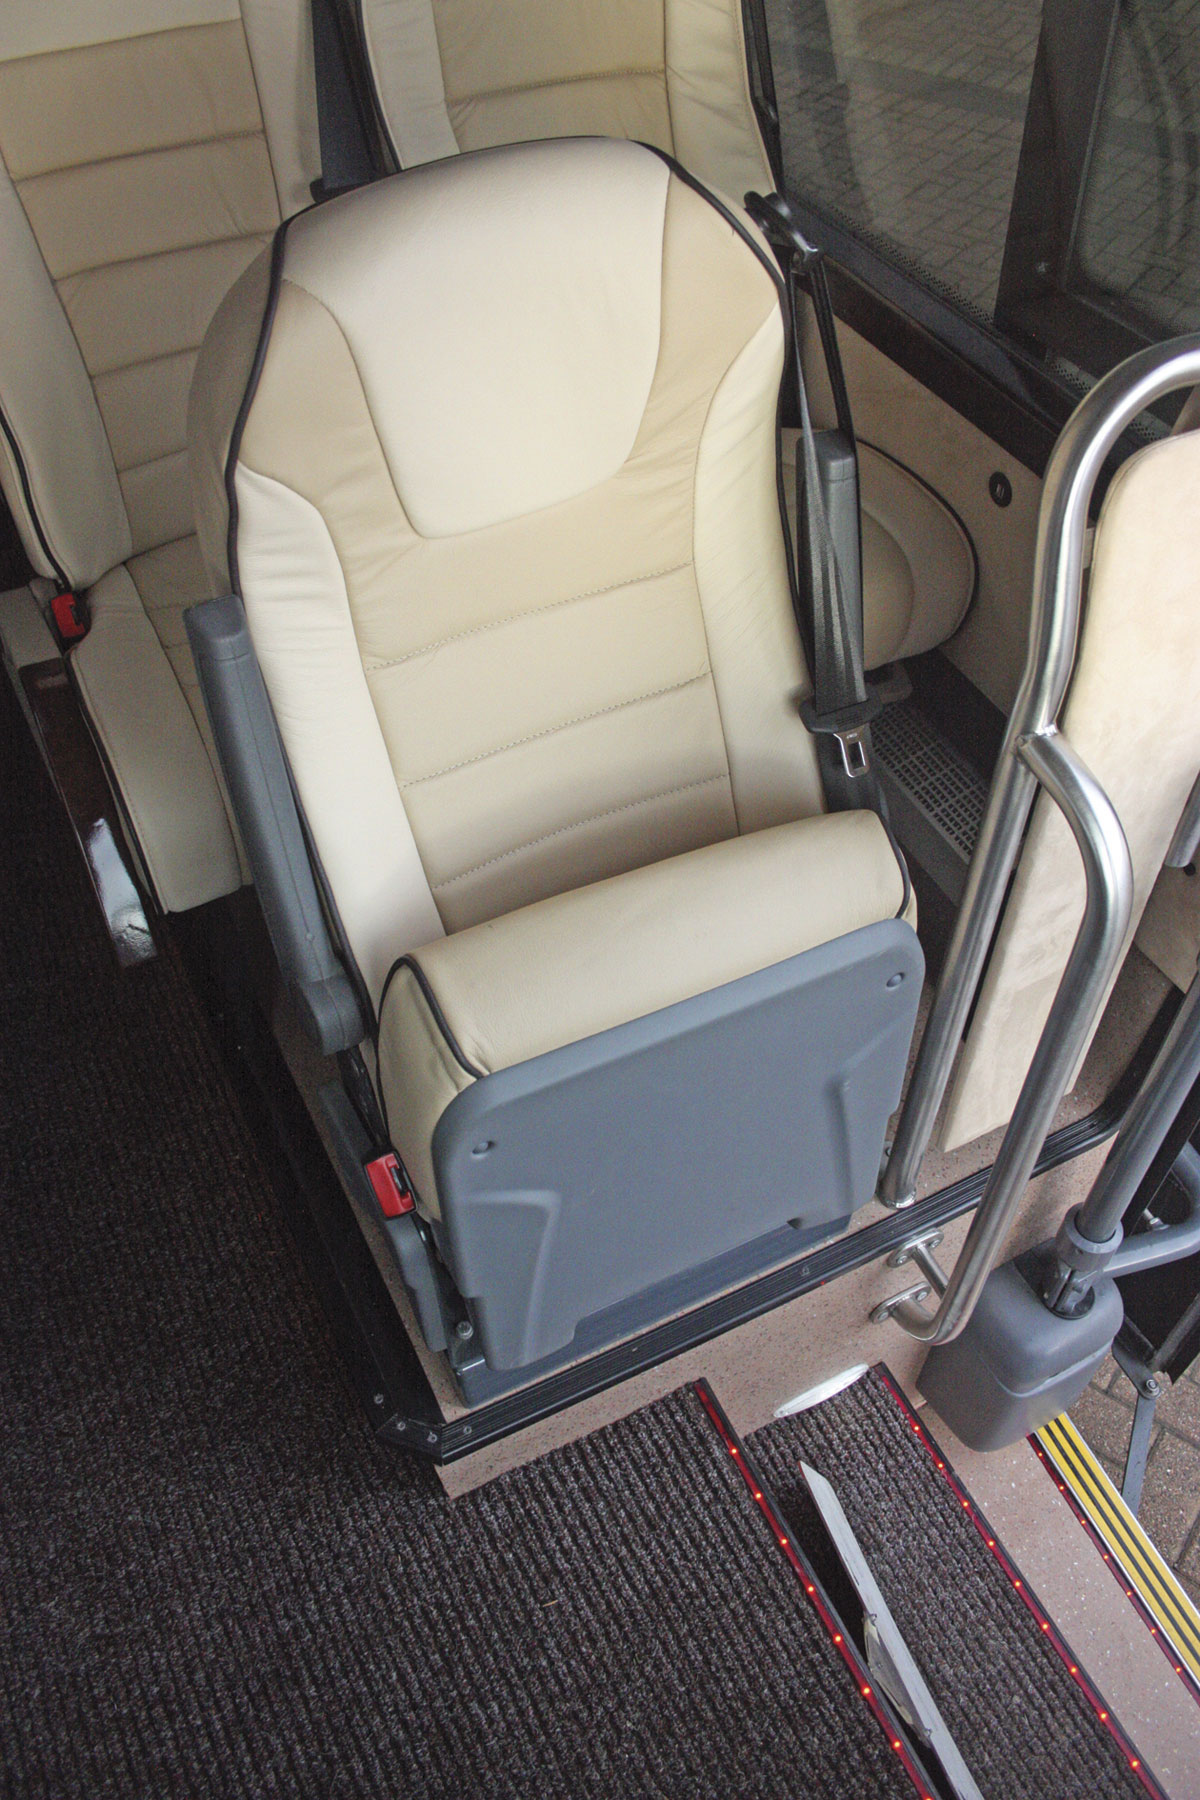 The courier seat is trimmed to match the saloon seats